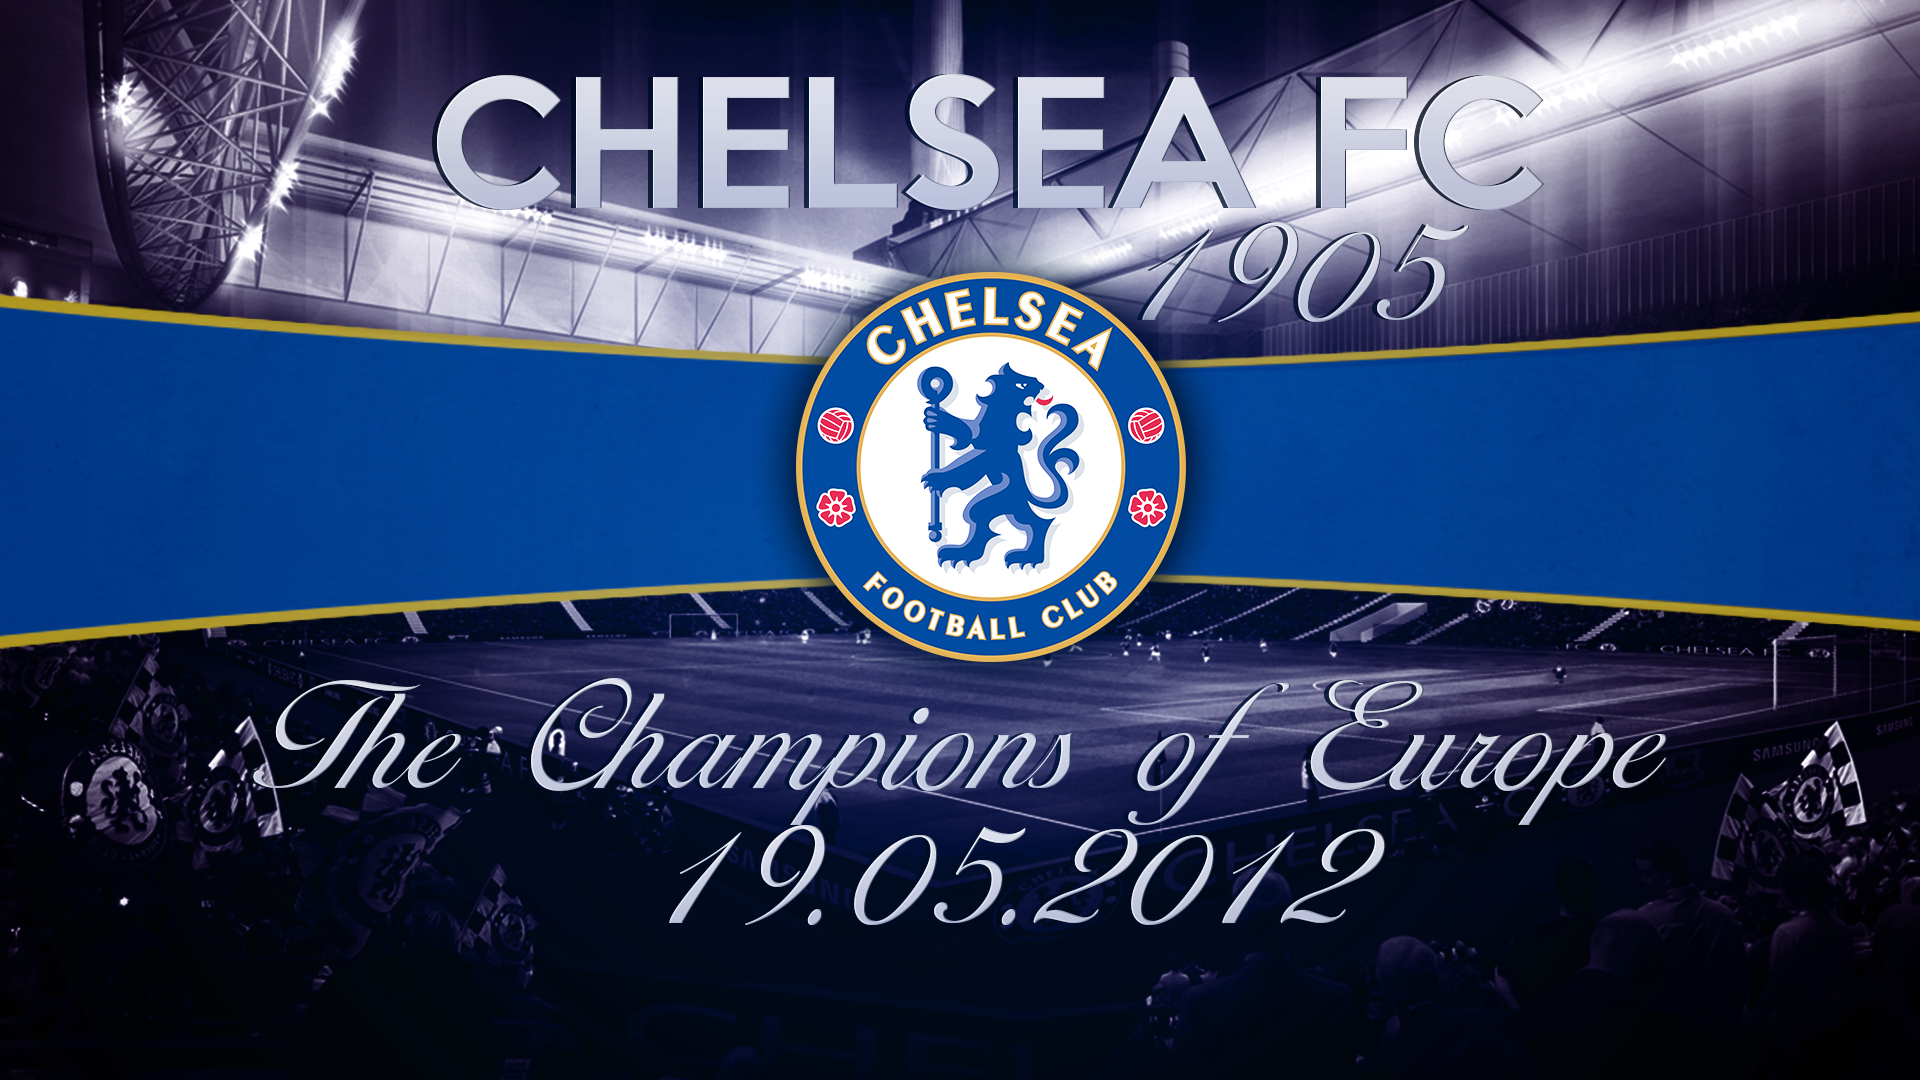 This is why it is written in the stars a sacred year and date for jax macdonald chelsea fc wallpaper for mac computers 1920 x 1080 px voltagebd Gallery